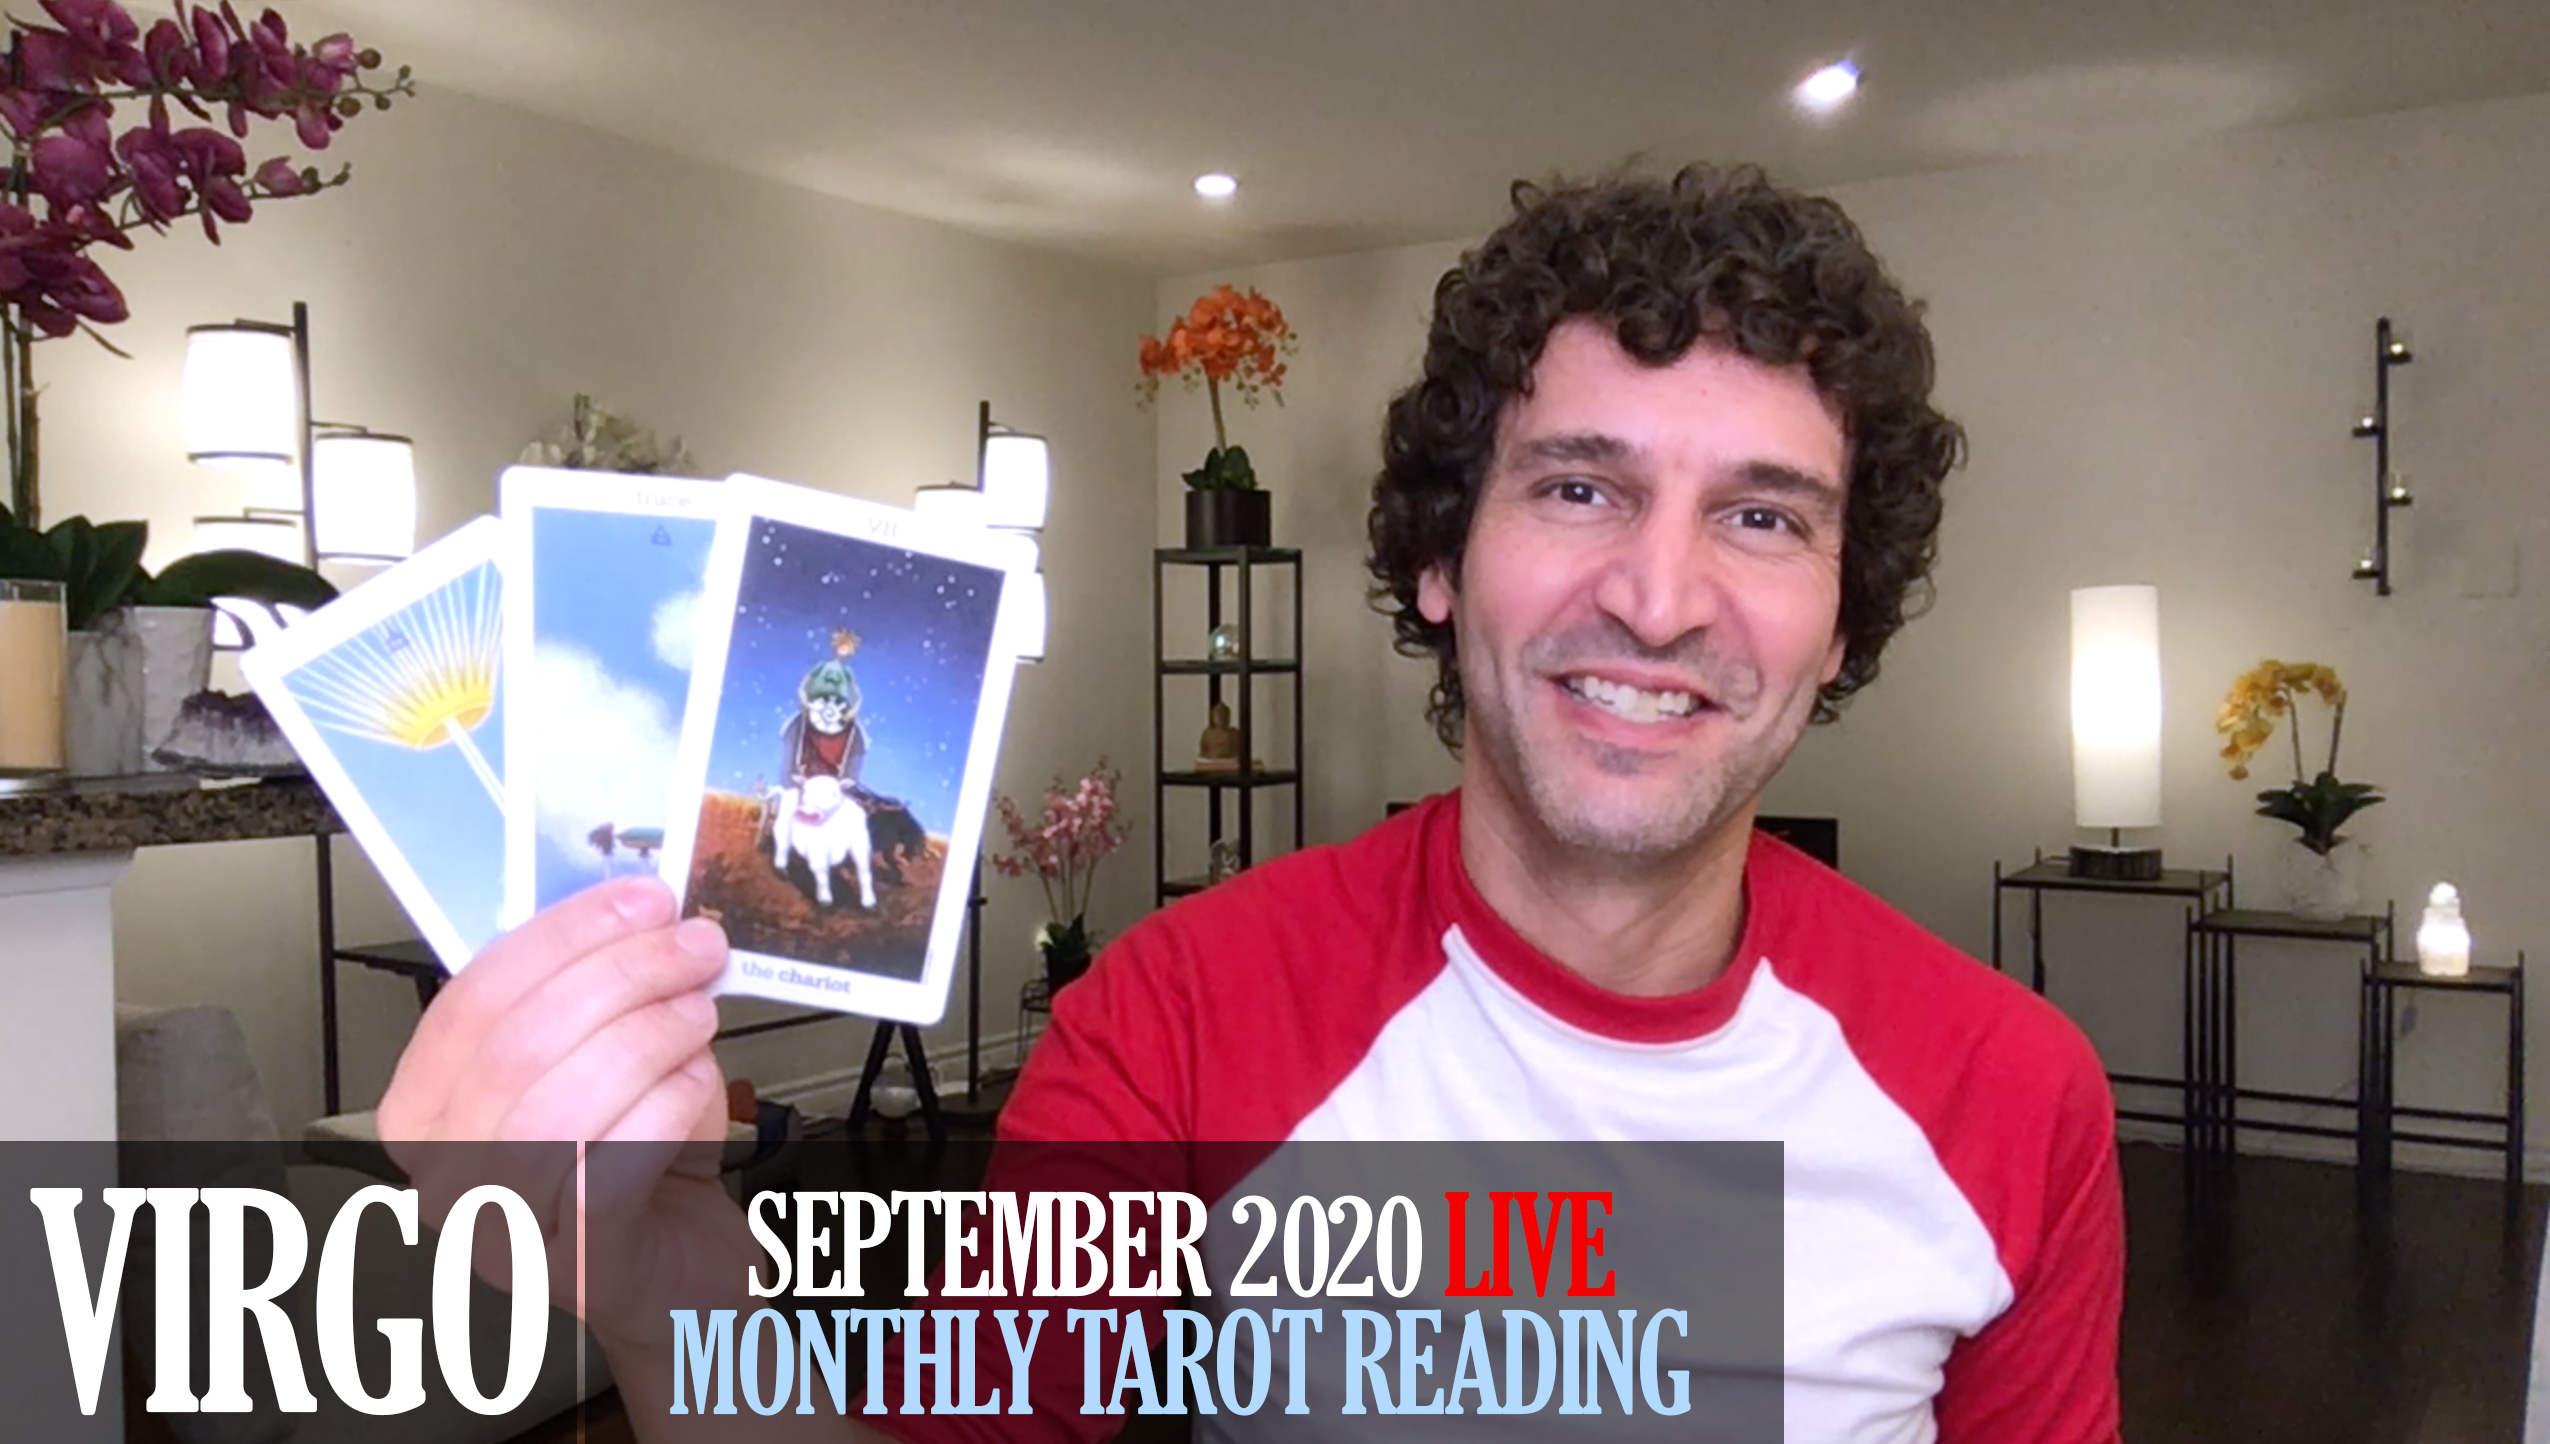 Virgo September 2020 Tarot Reading